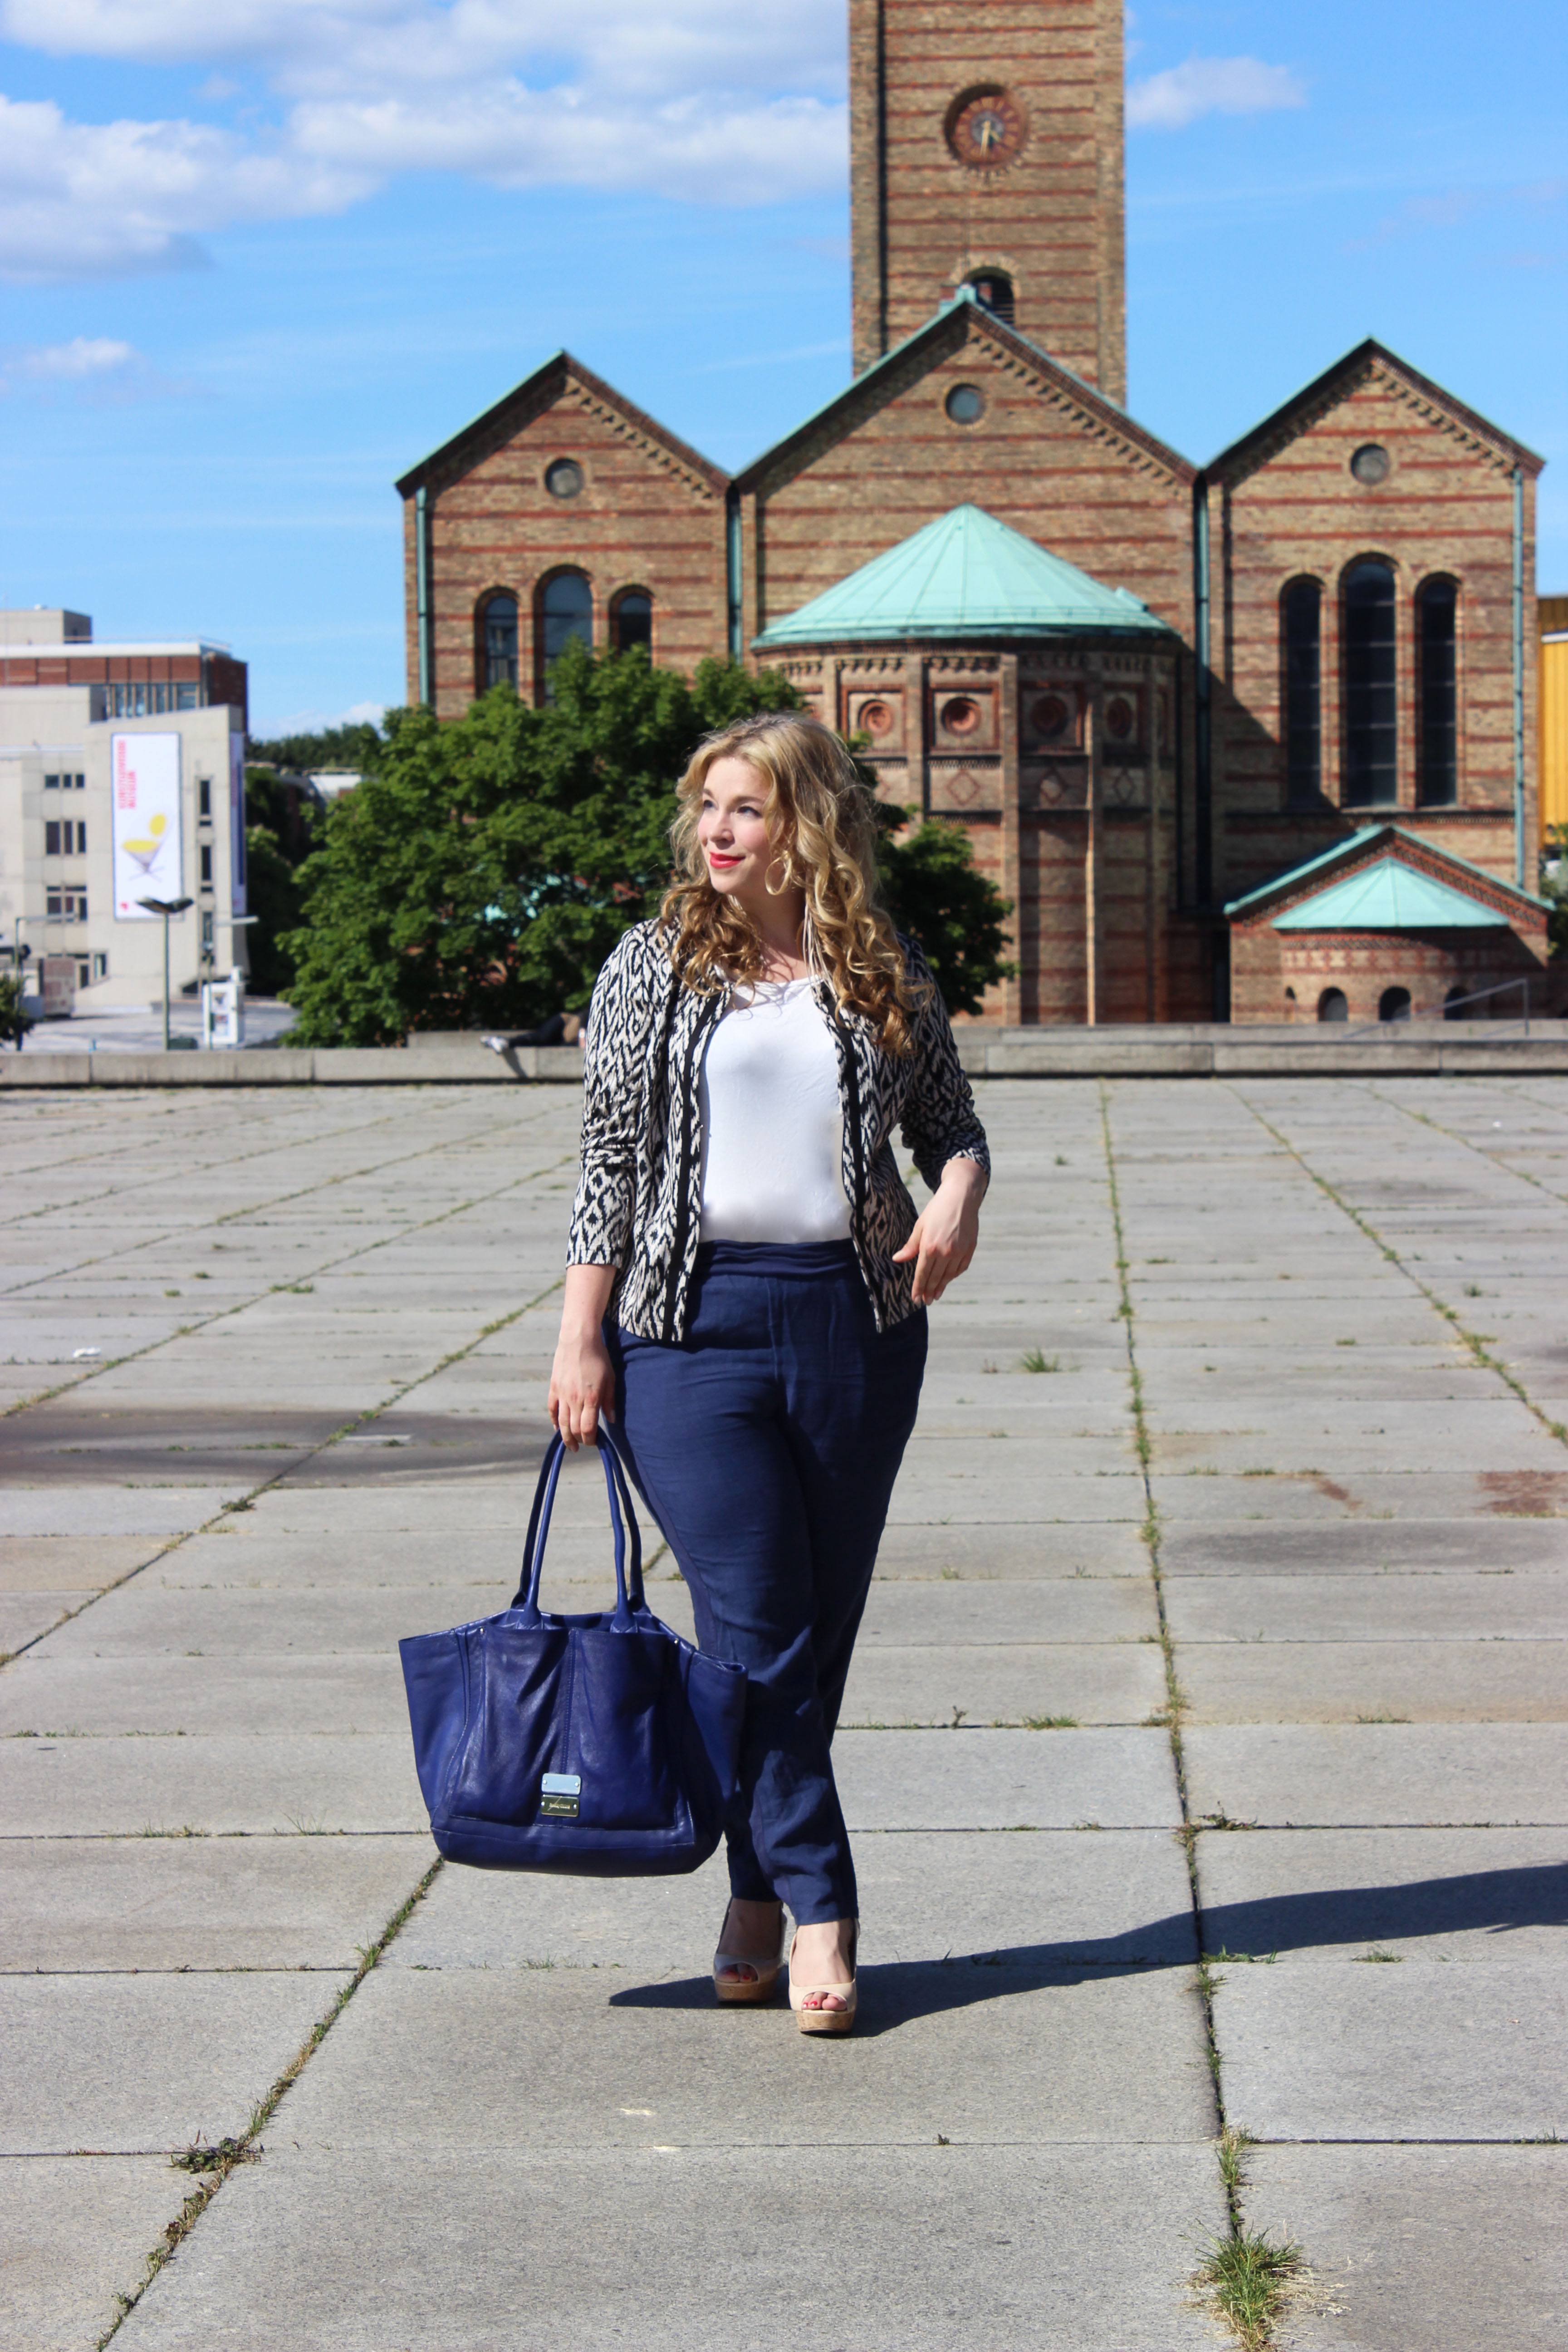 City-Look-Berlin-Samoon-Caterina-Pogorzelski-Megabambi-Blog-Berlin